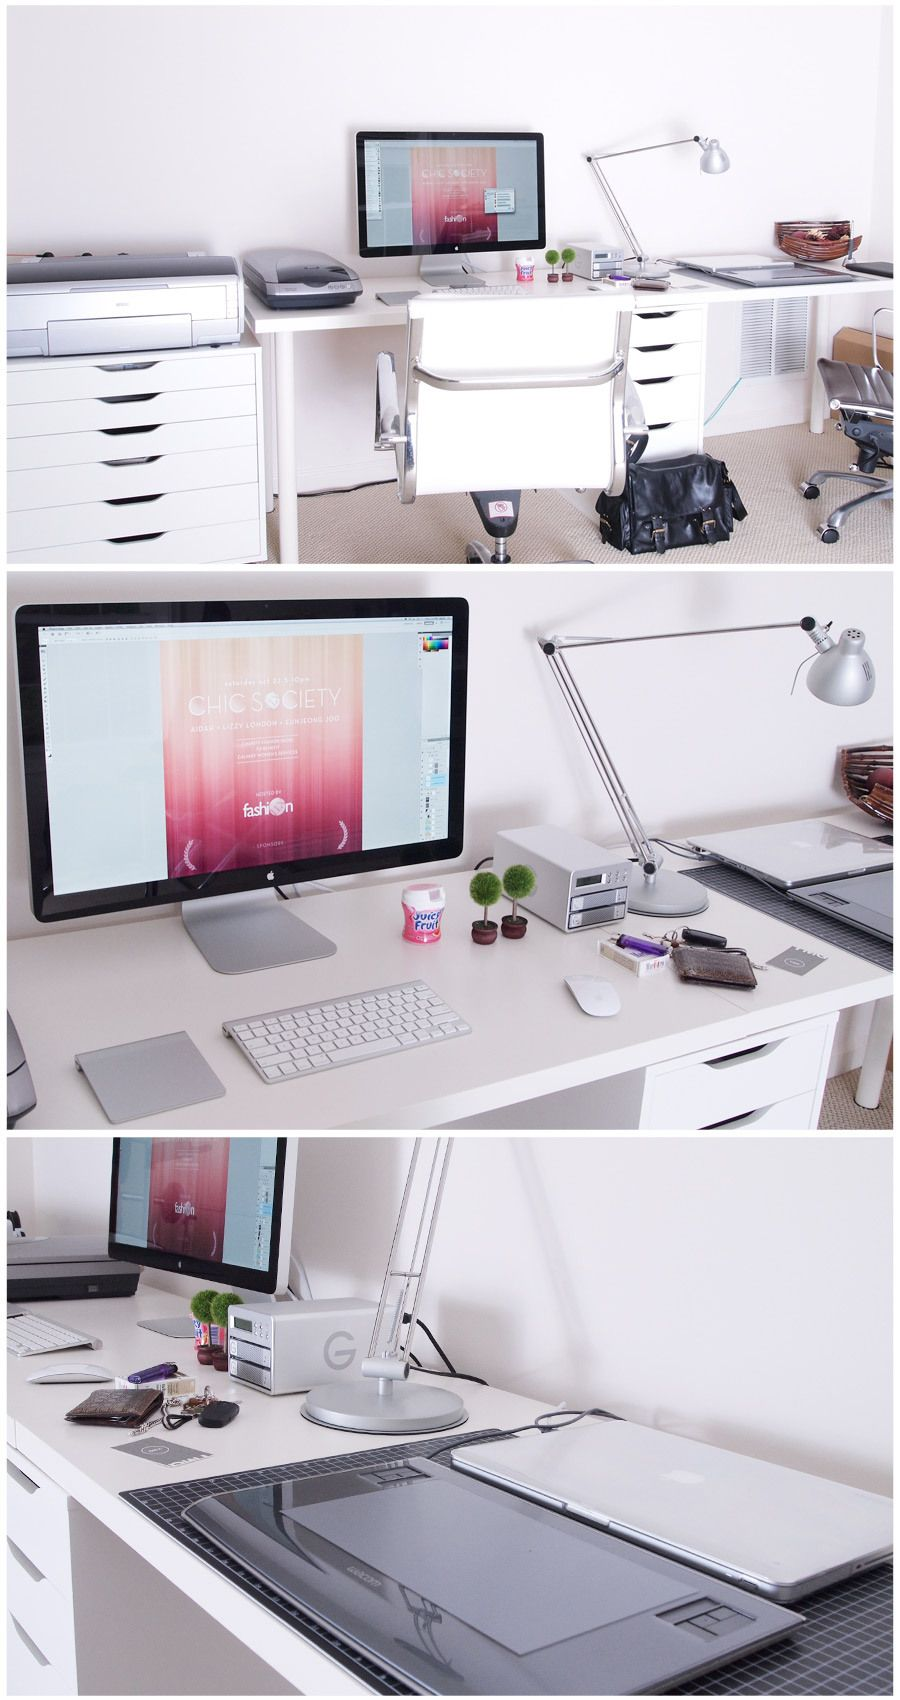 Graphic design work from home